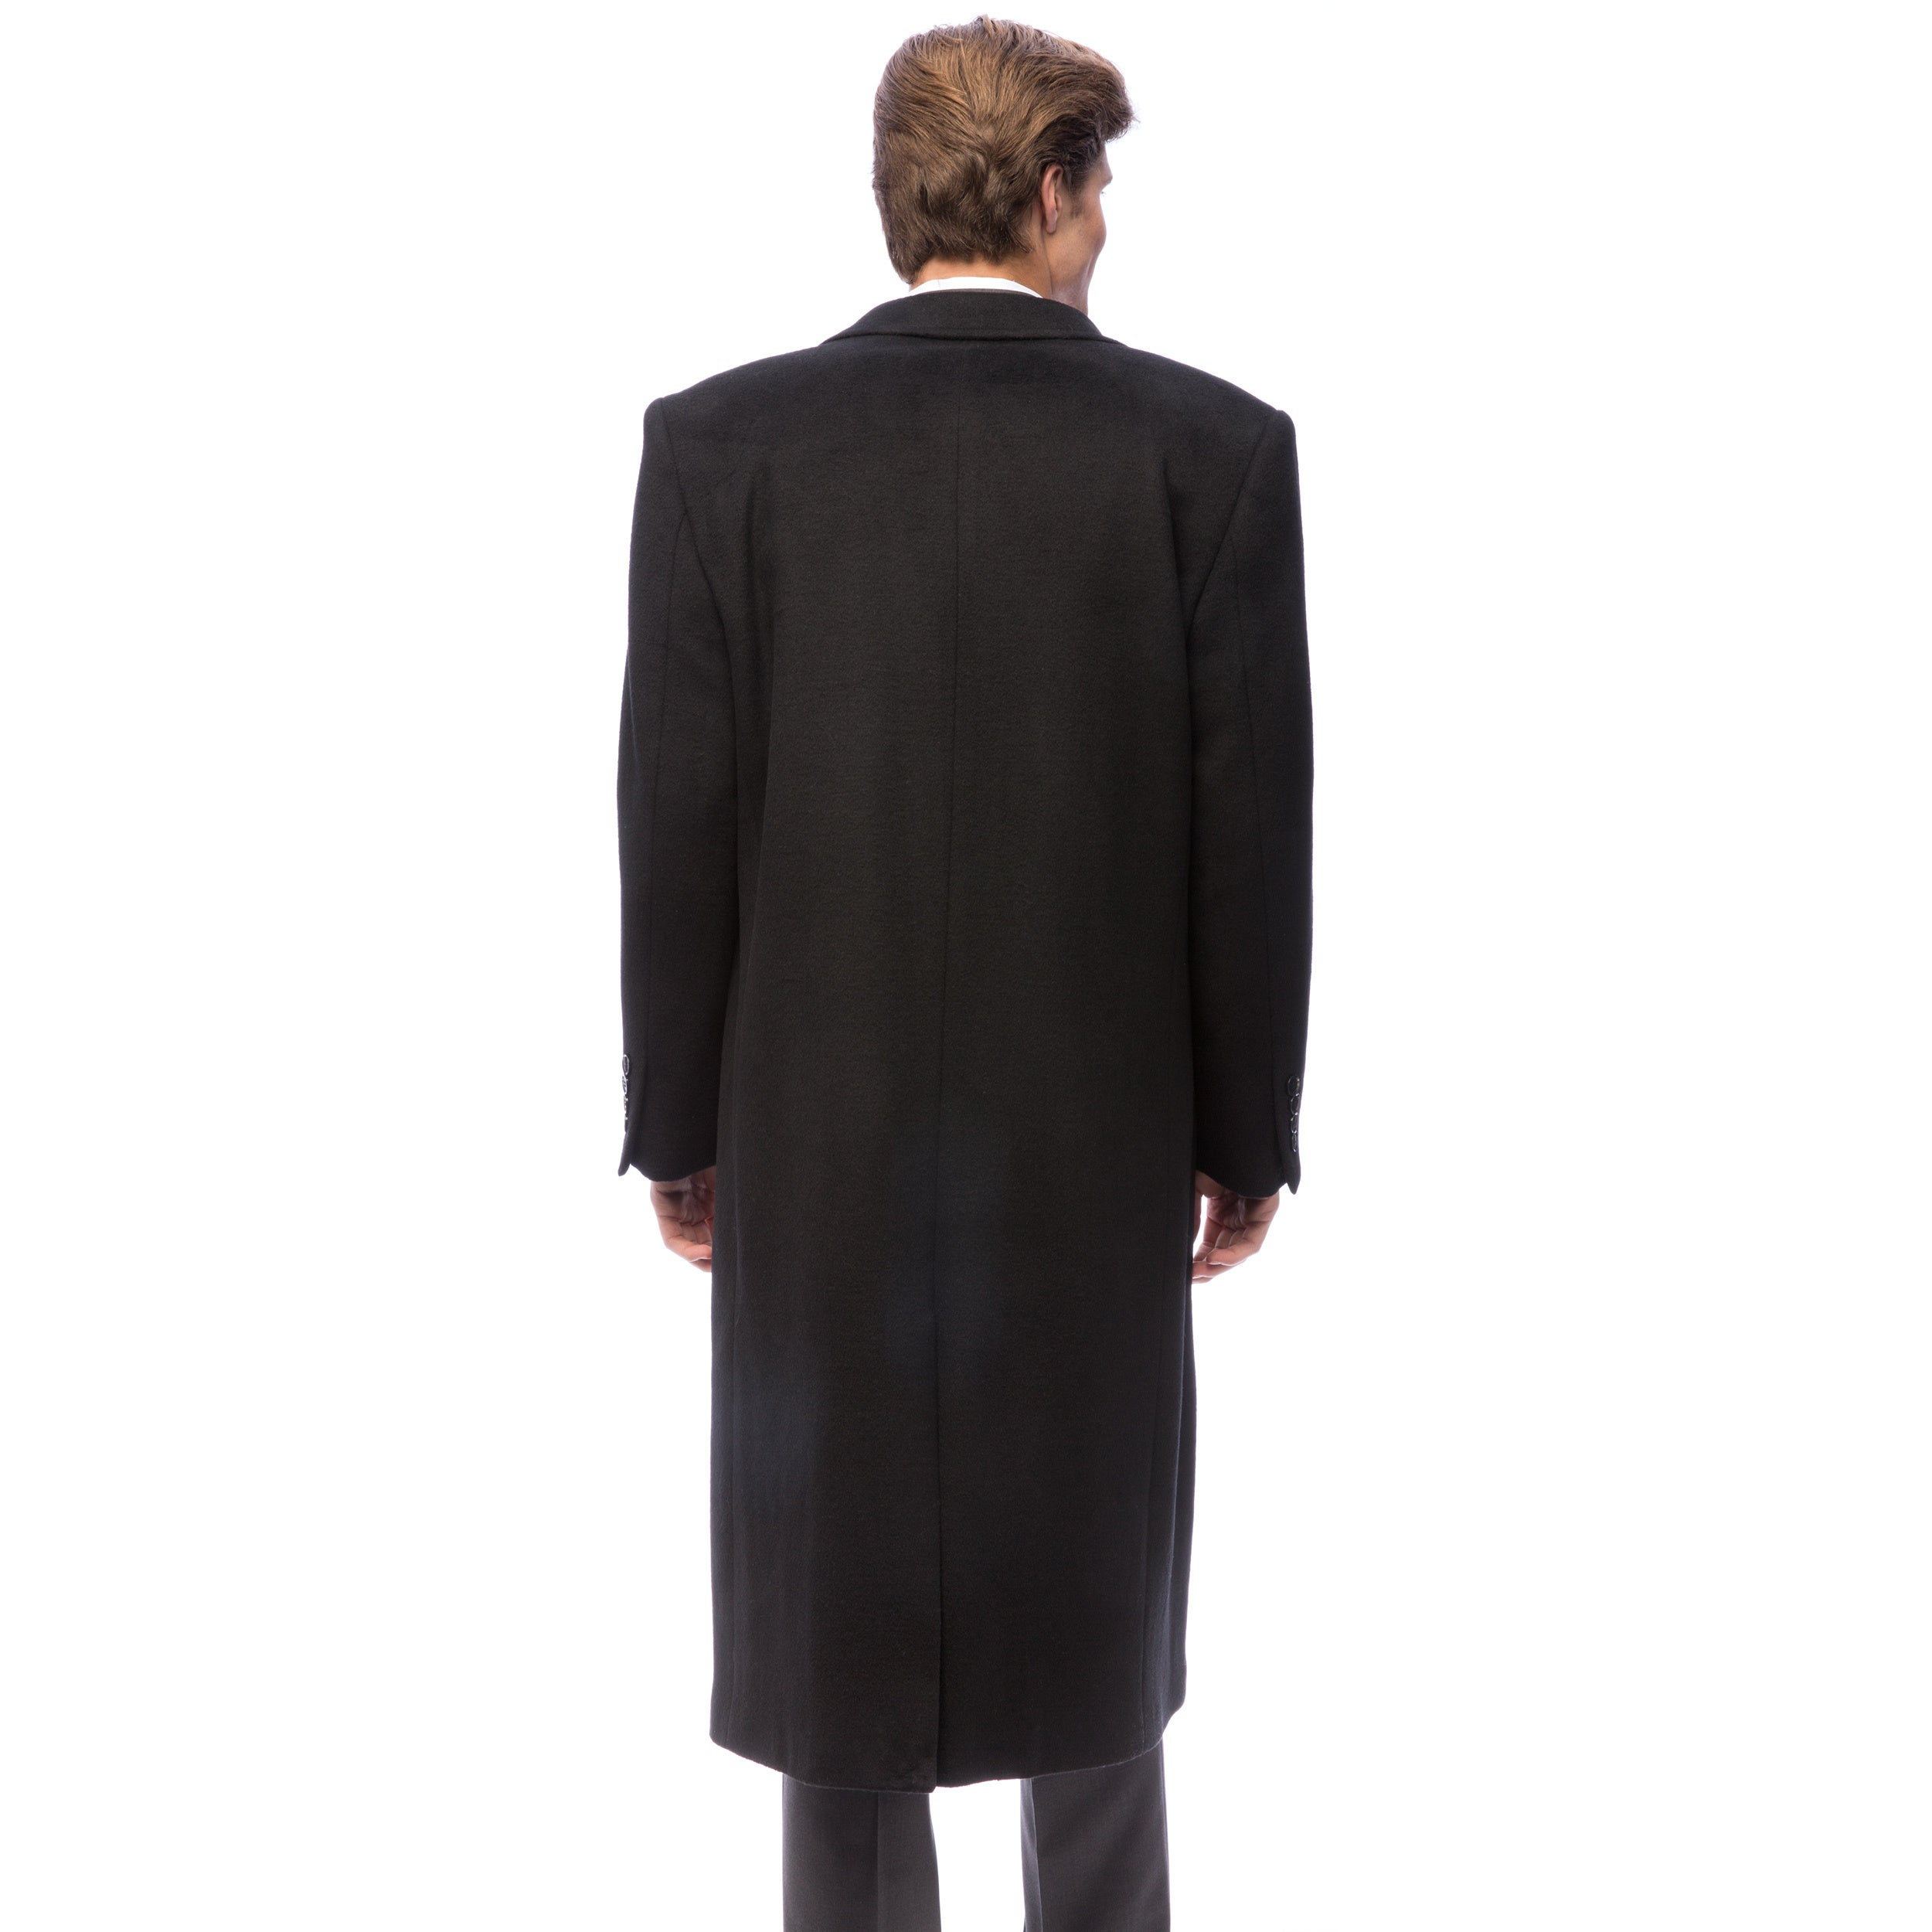 512525e66f1 Shop Red Label Wool and Cashmere Black Overcoat - Free Shipping Today -  Overstock - 3355520